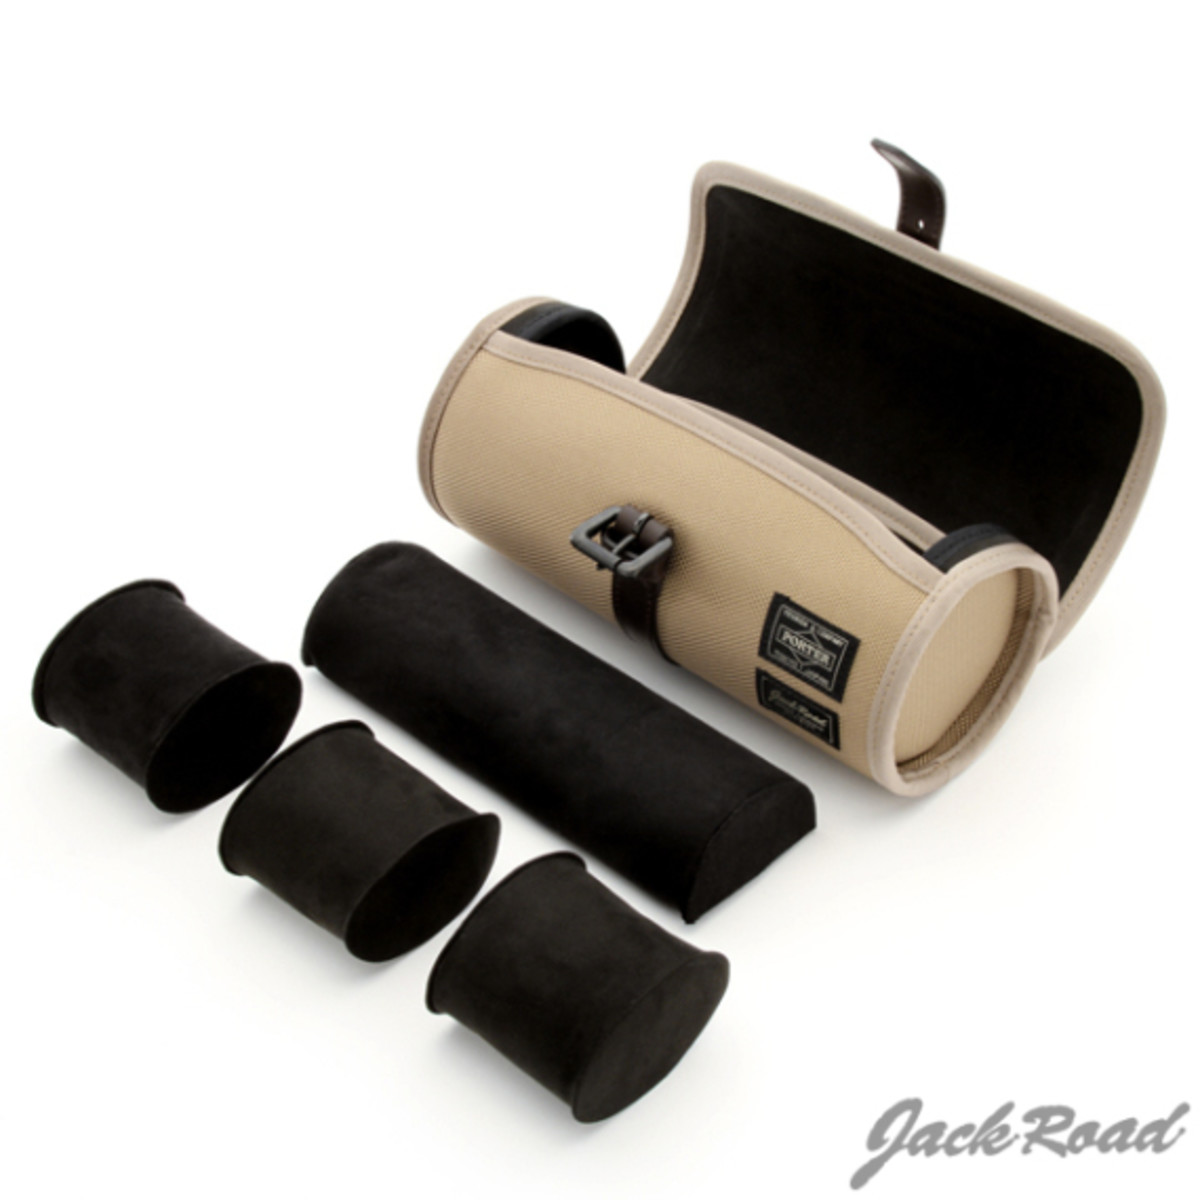 jack-road-porter-watch-carrying-case-16